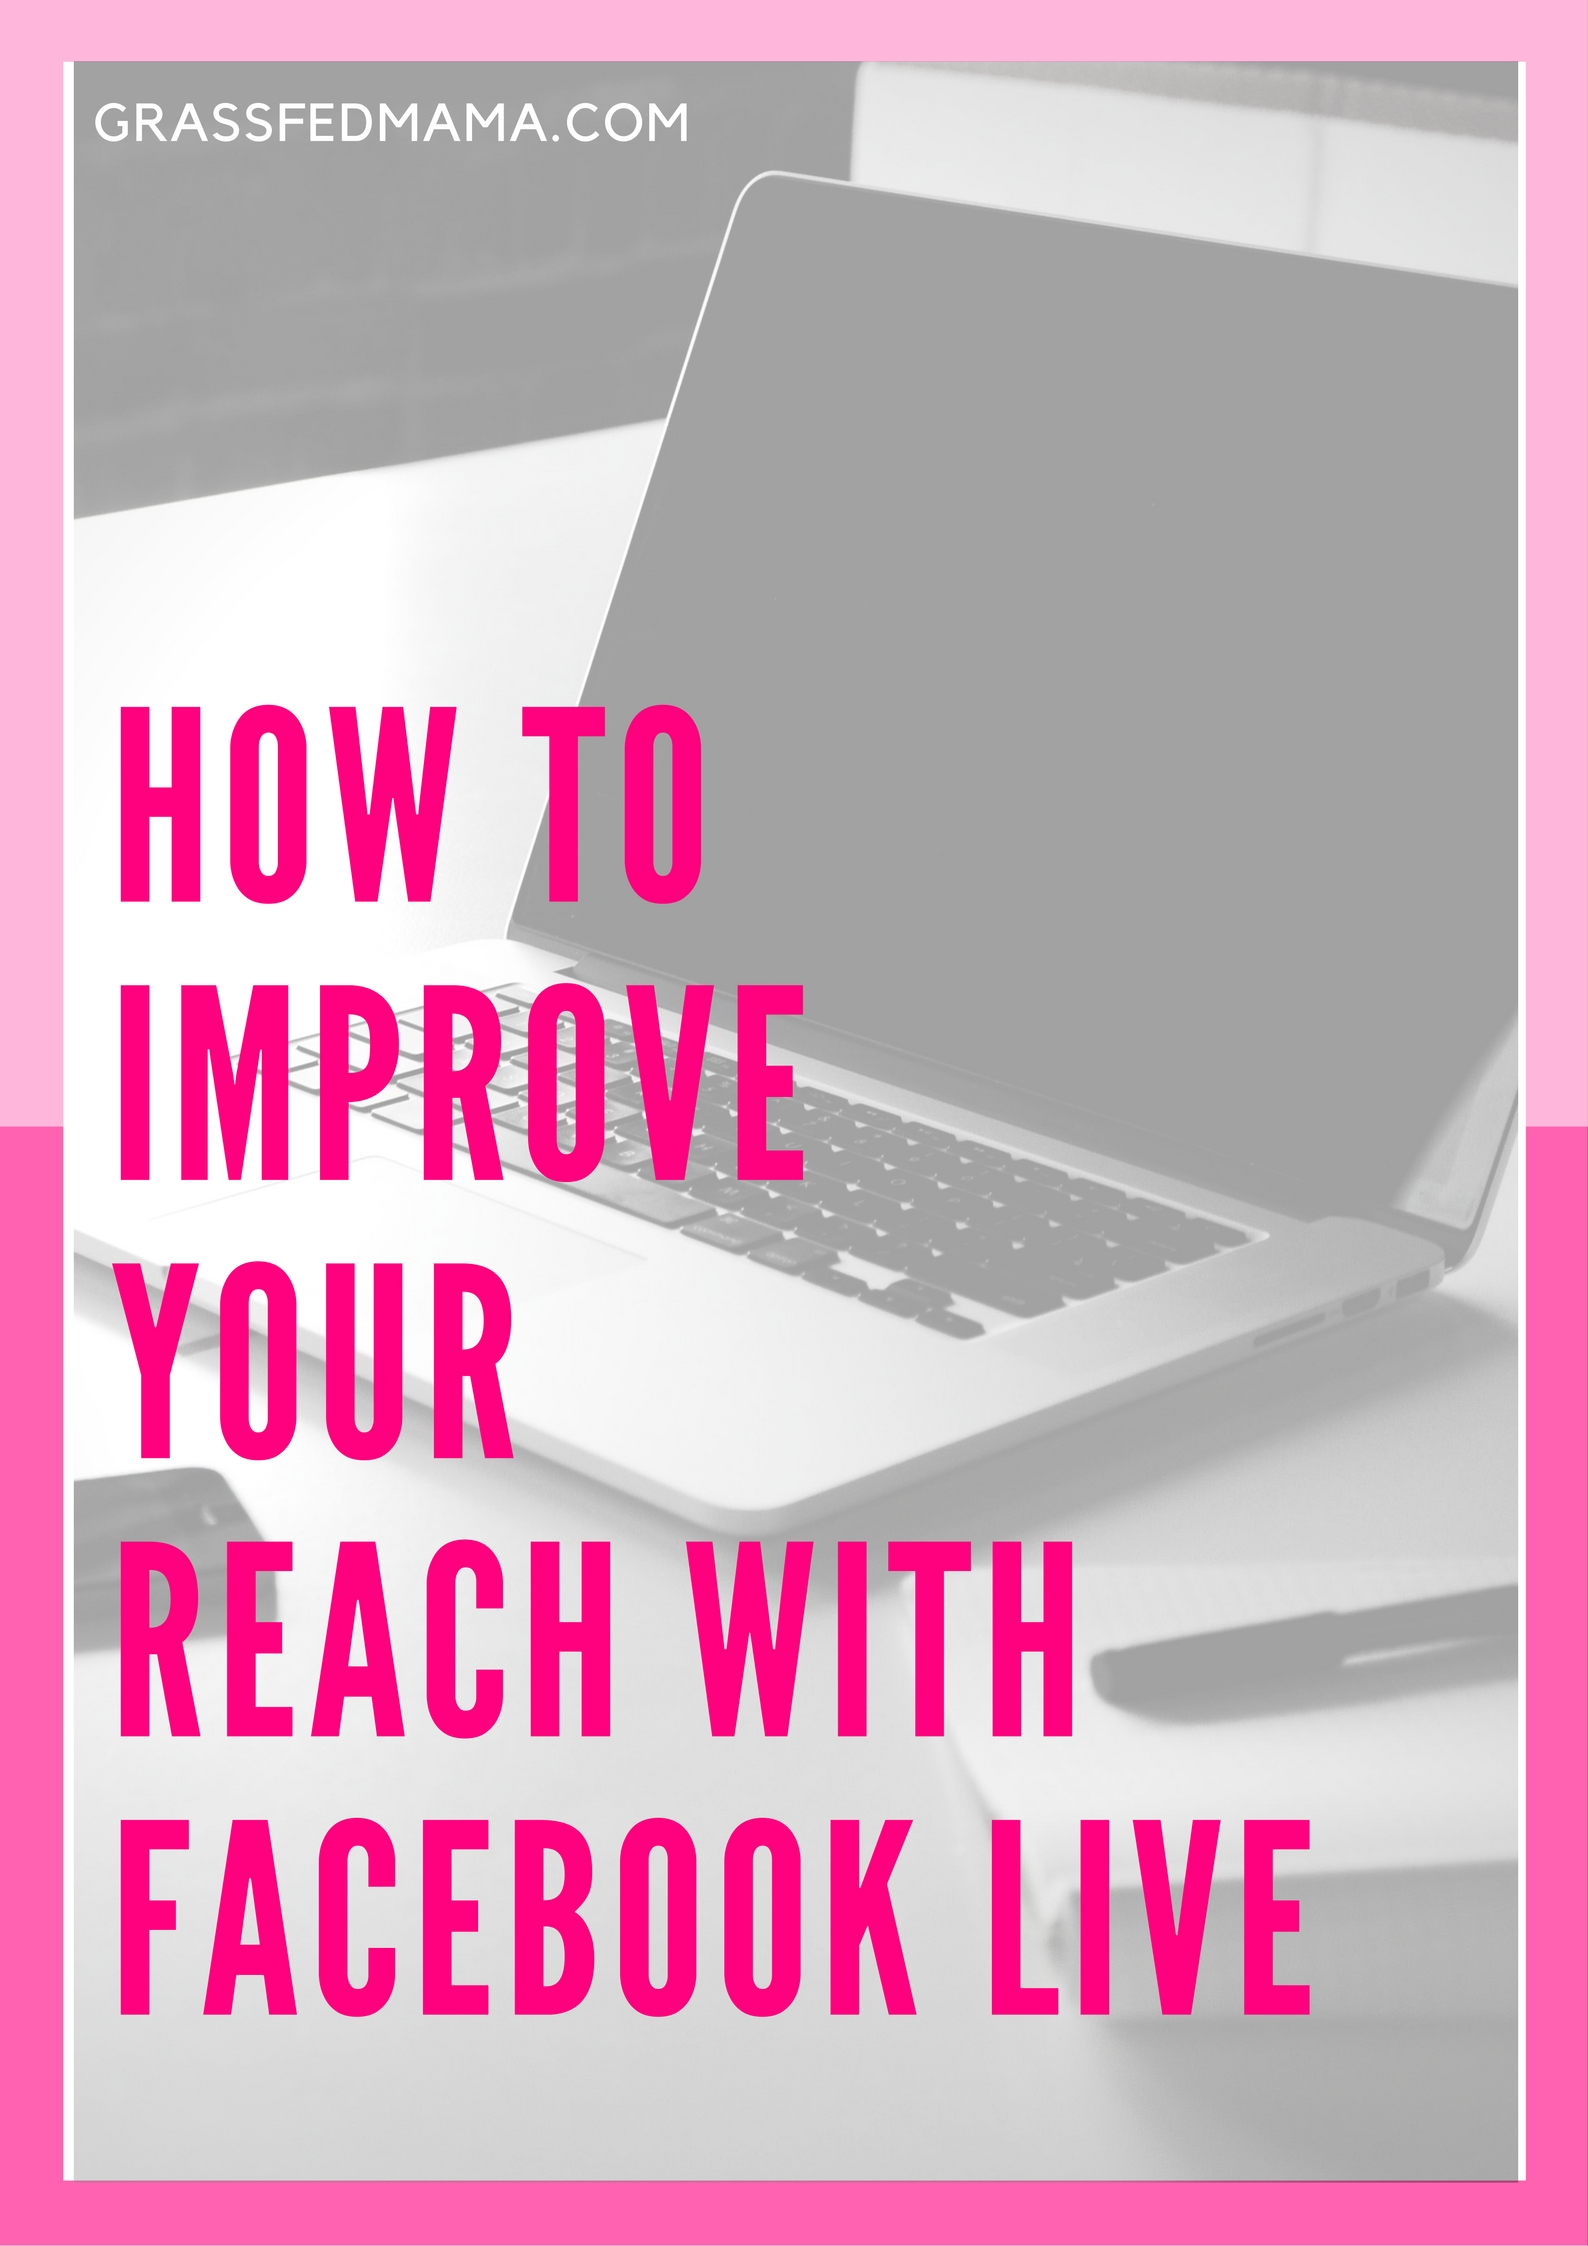 How to improve your reach with Facebook Live